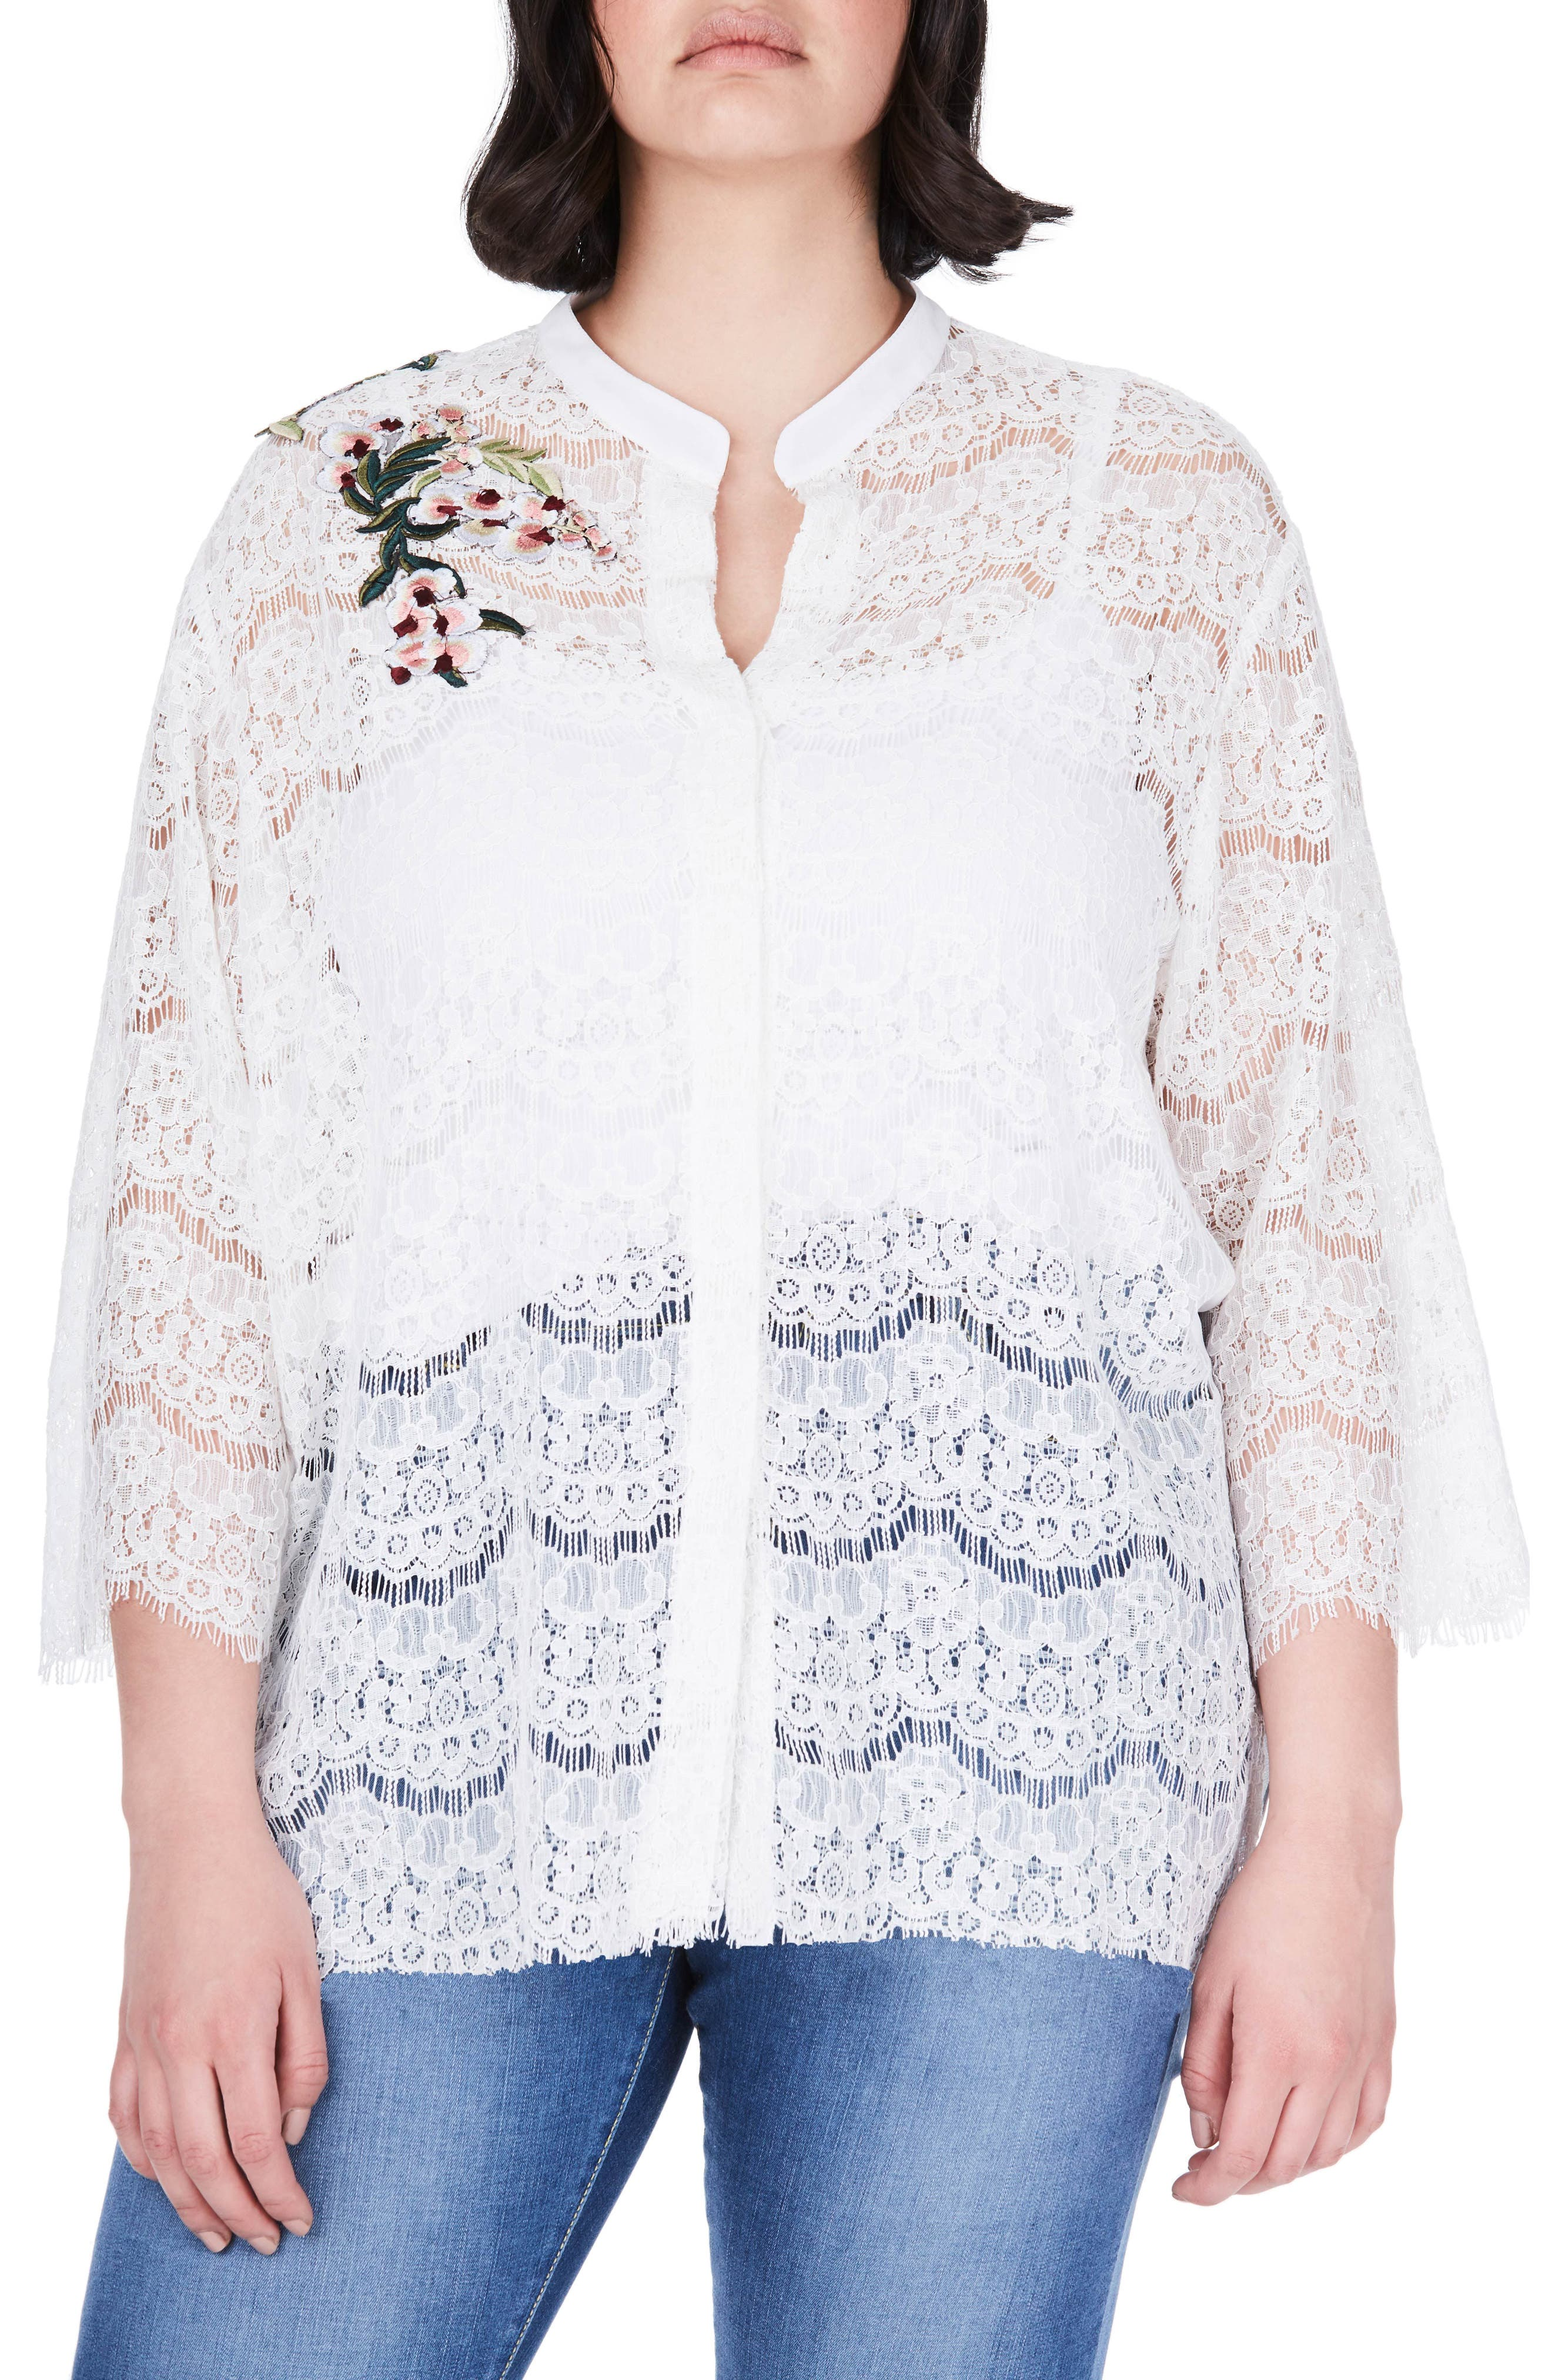 Floral Embroidered Lace Top,                         Main,                         color, White